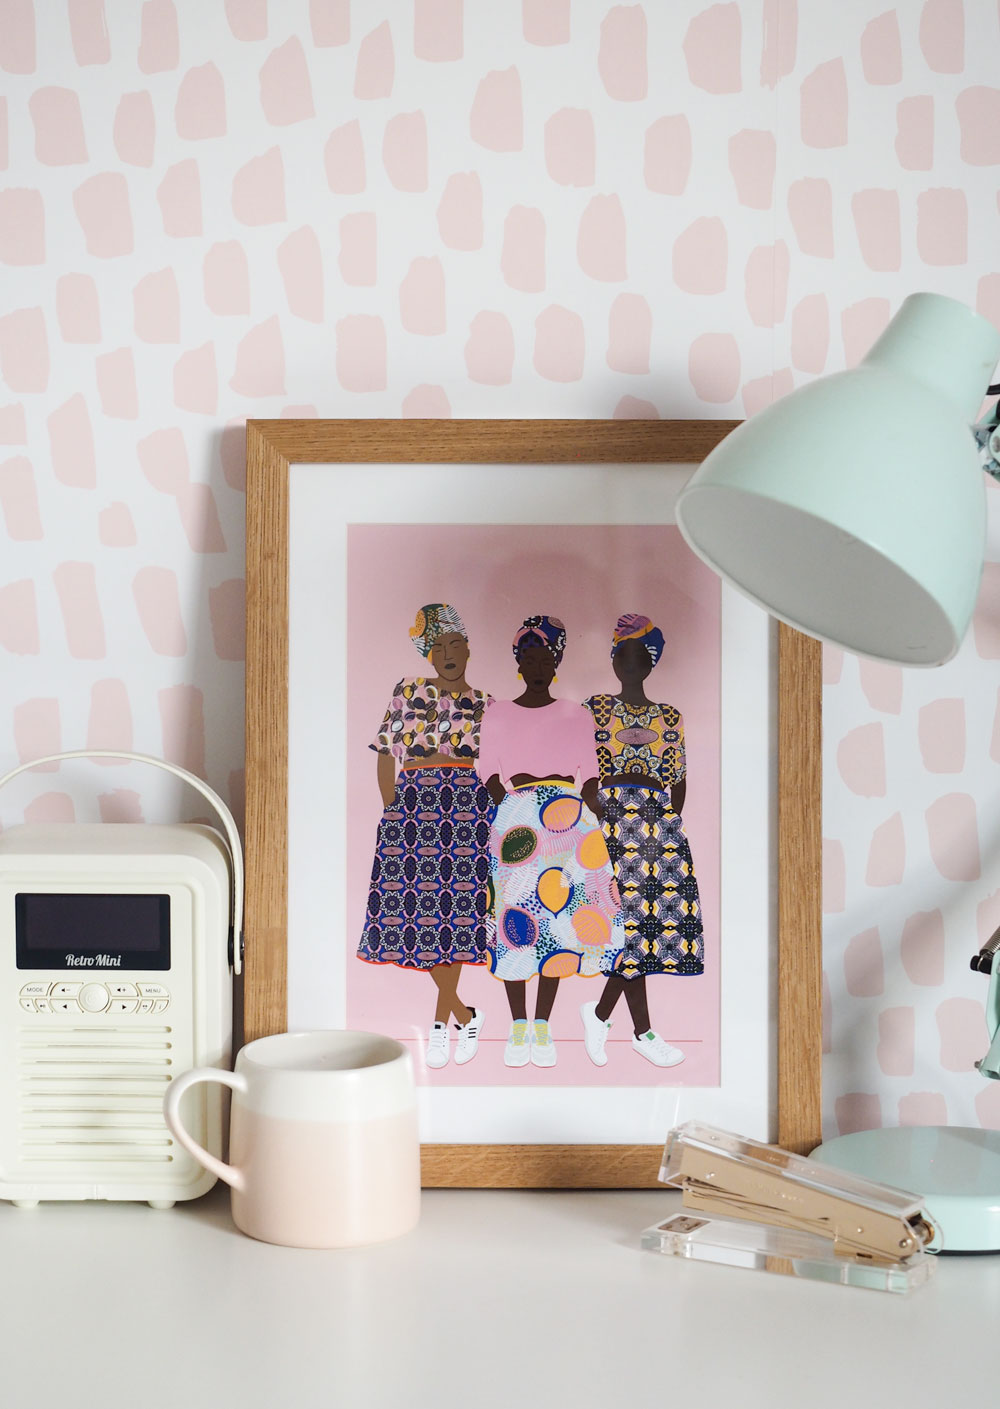 Colourful wall art ideas, prints and posters to decorate your rental apartment or first home.